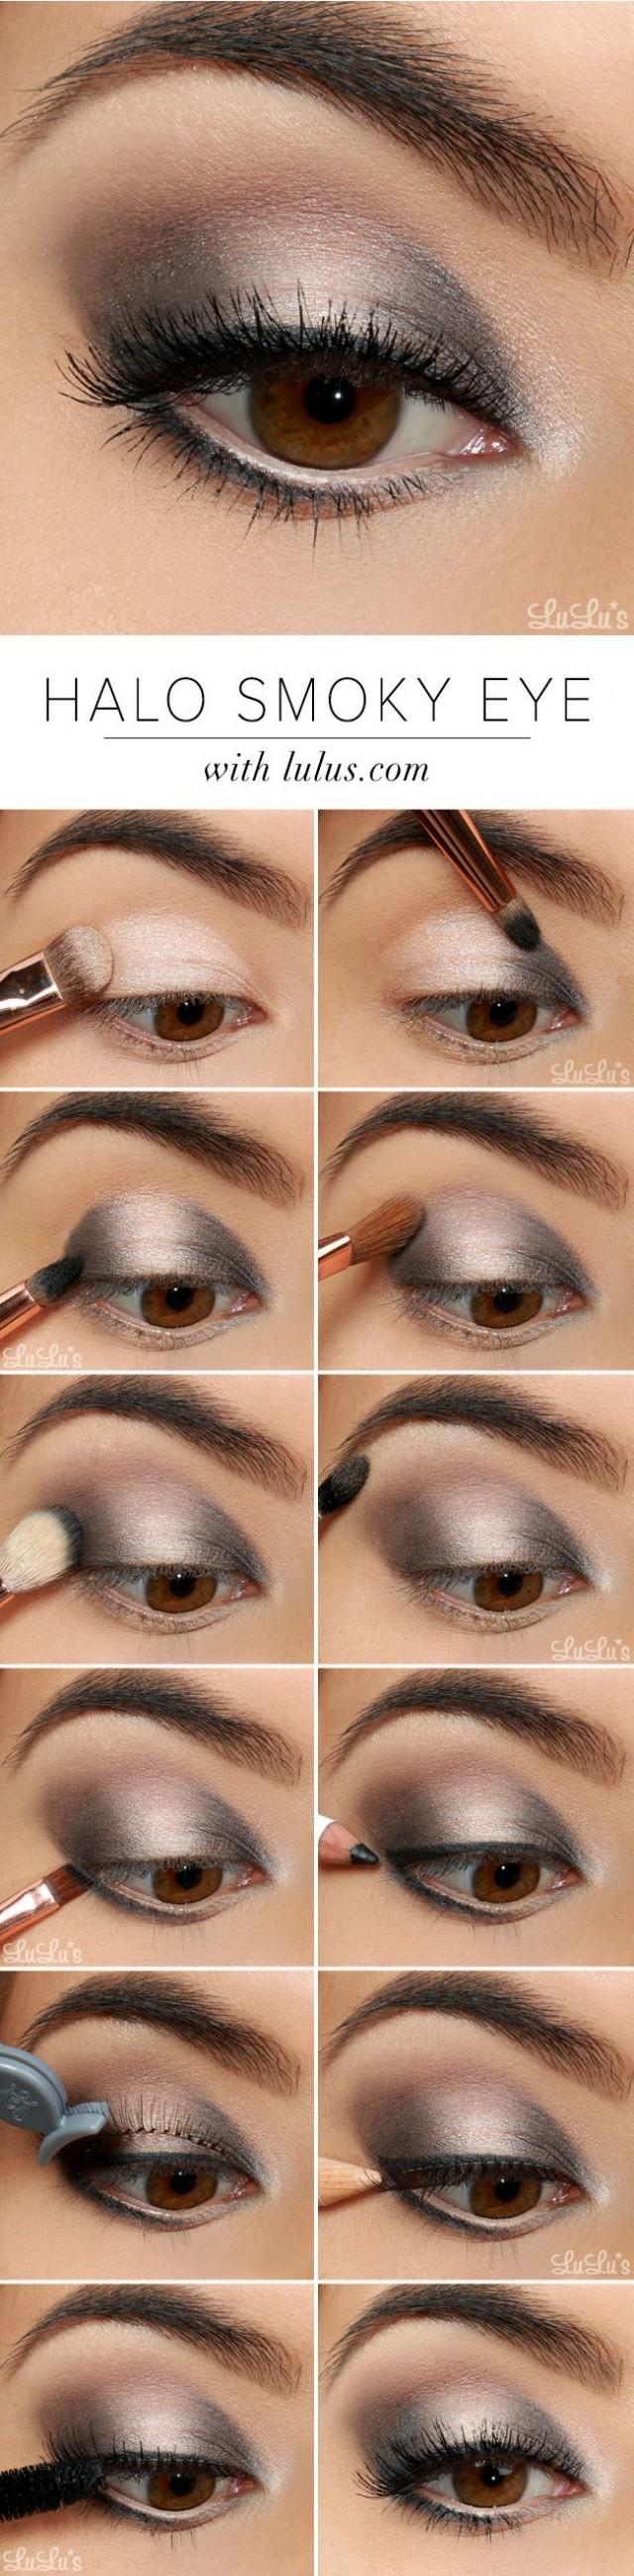 wedding photo - Lulus How-To: Halo Smokey Eye Shadow Tutorial